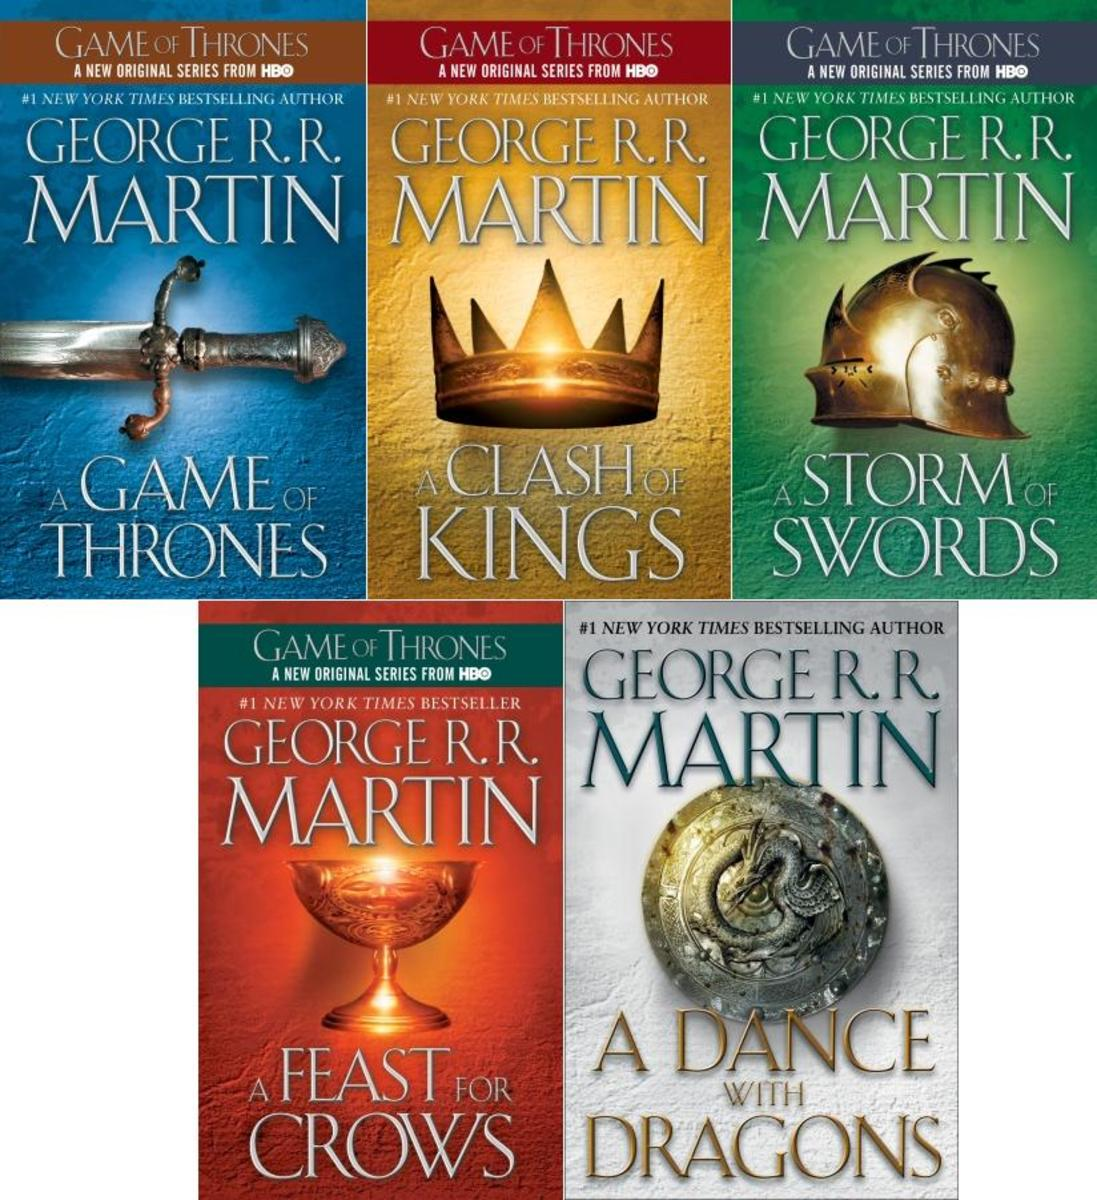 Covers from A Song of Ice and Fire